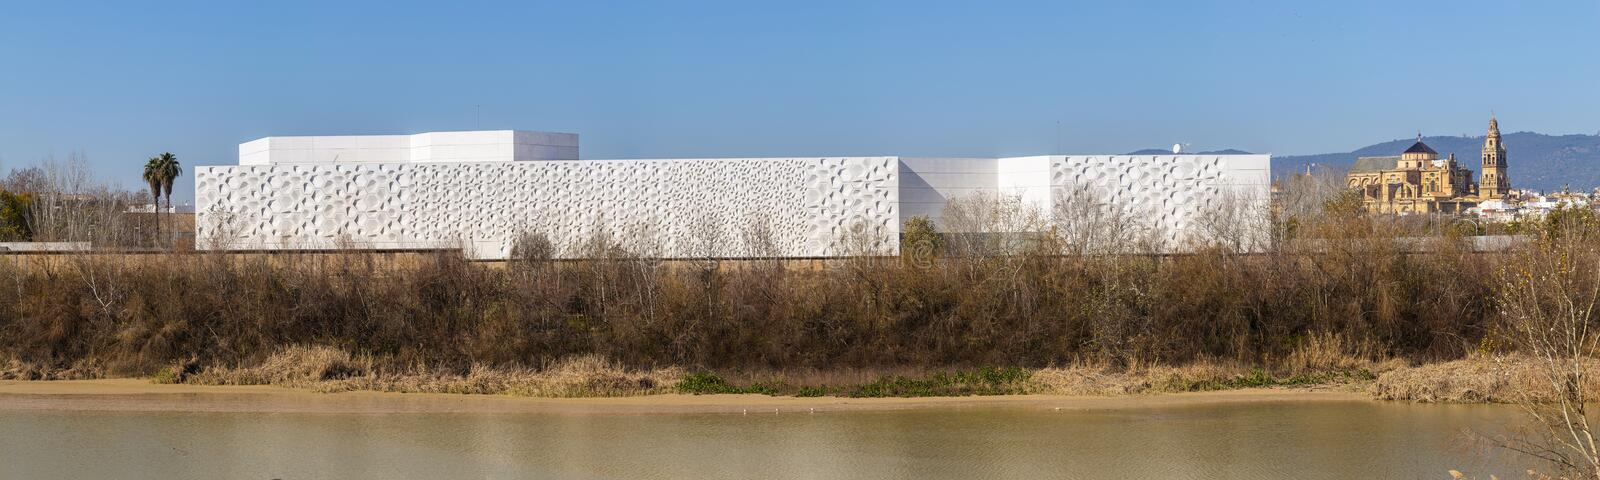 Contemporary creation center building on Corodoba city in Spain. Exterior of modern white Contemporary creation center building placed on embankment of Cordoba royalty free stock image